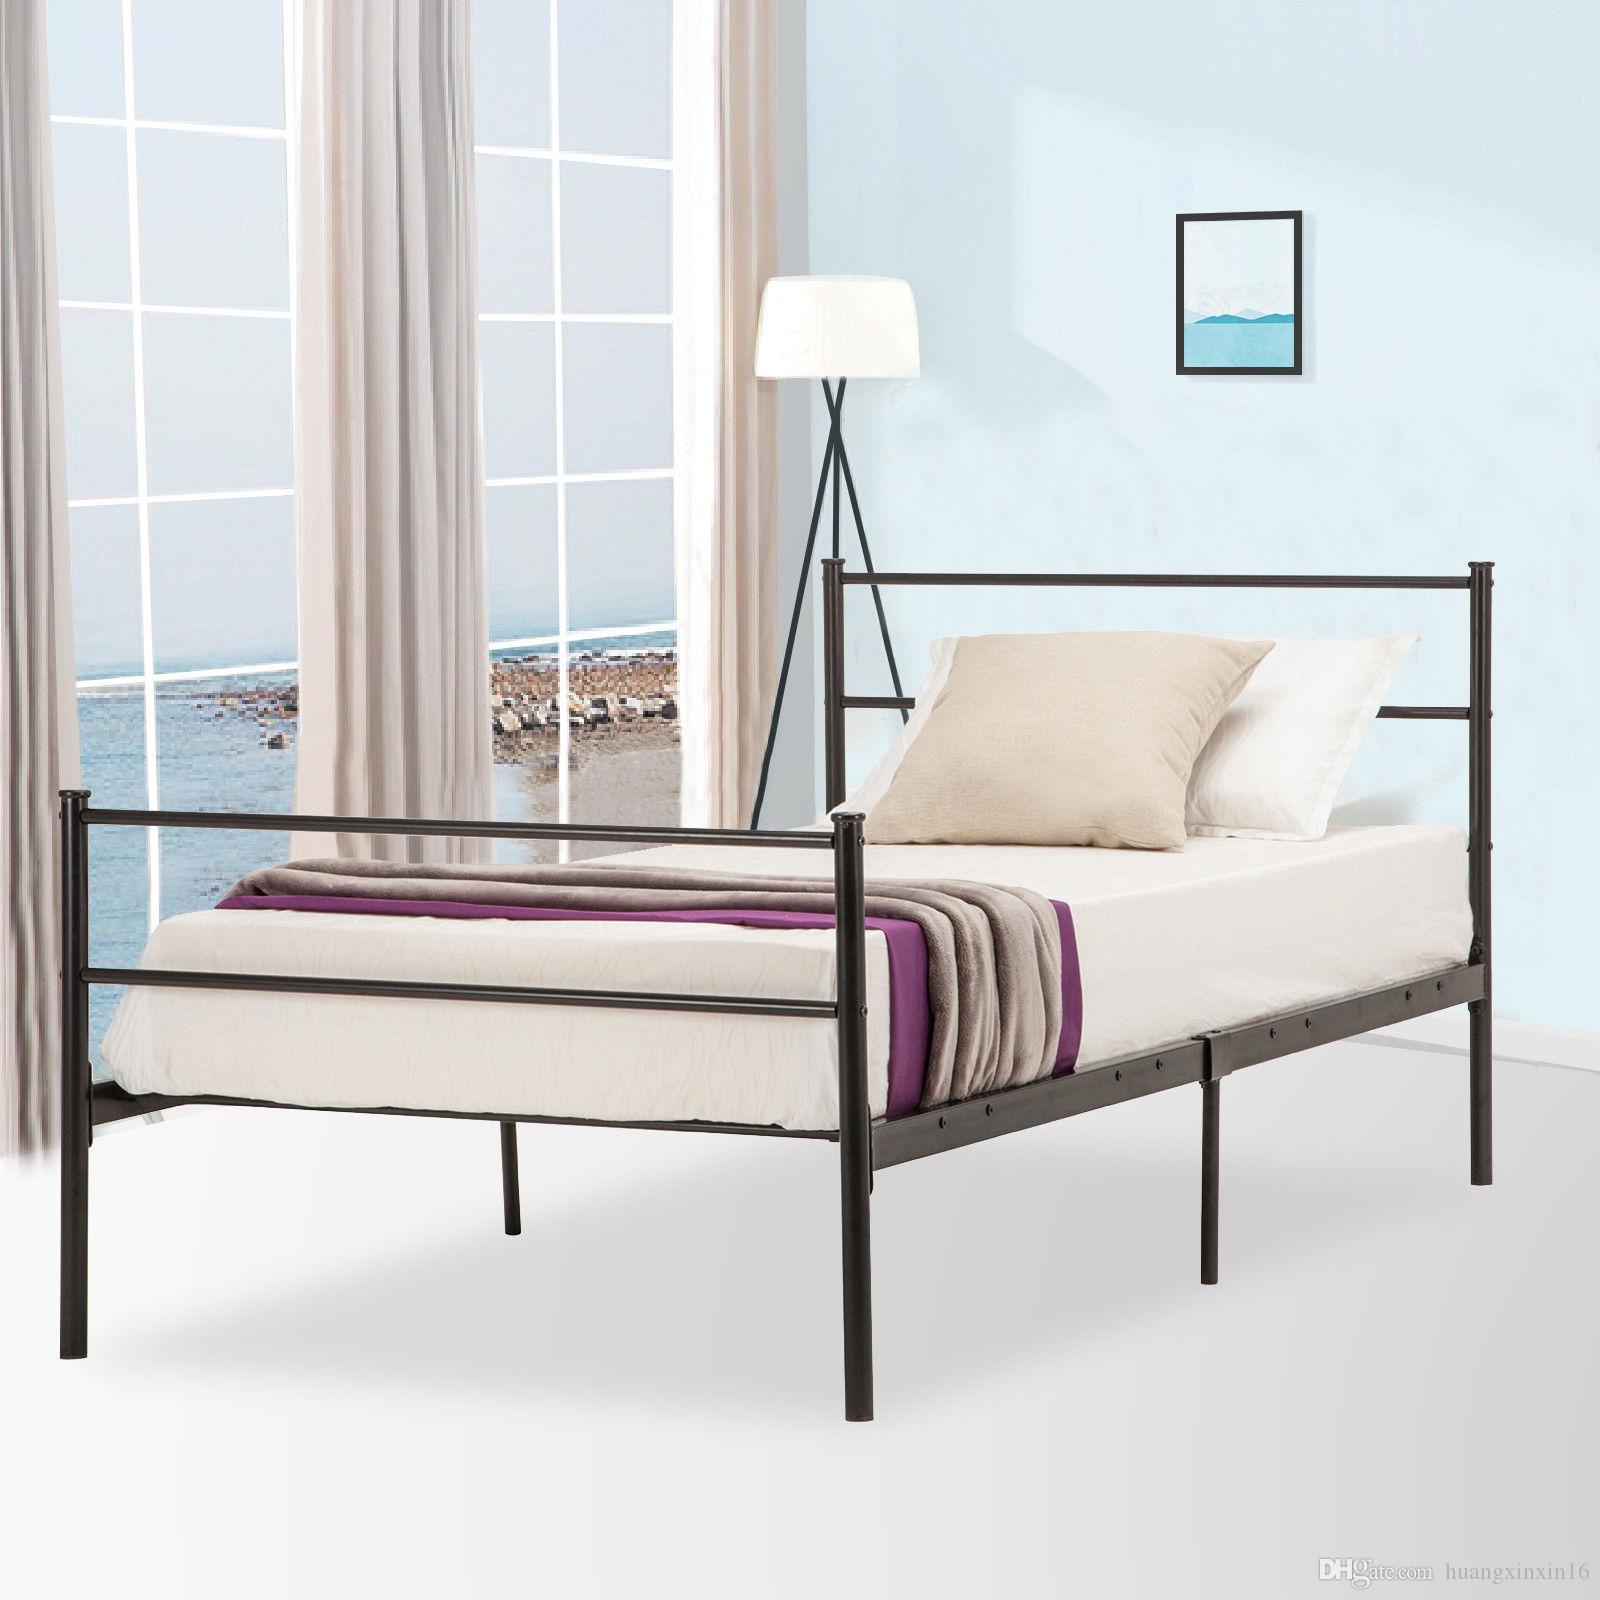 2019 twin size platform metal bed frame foundation headboard furniture bedroom from huangxinxin16 50 25 dhgate com